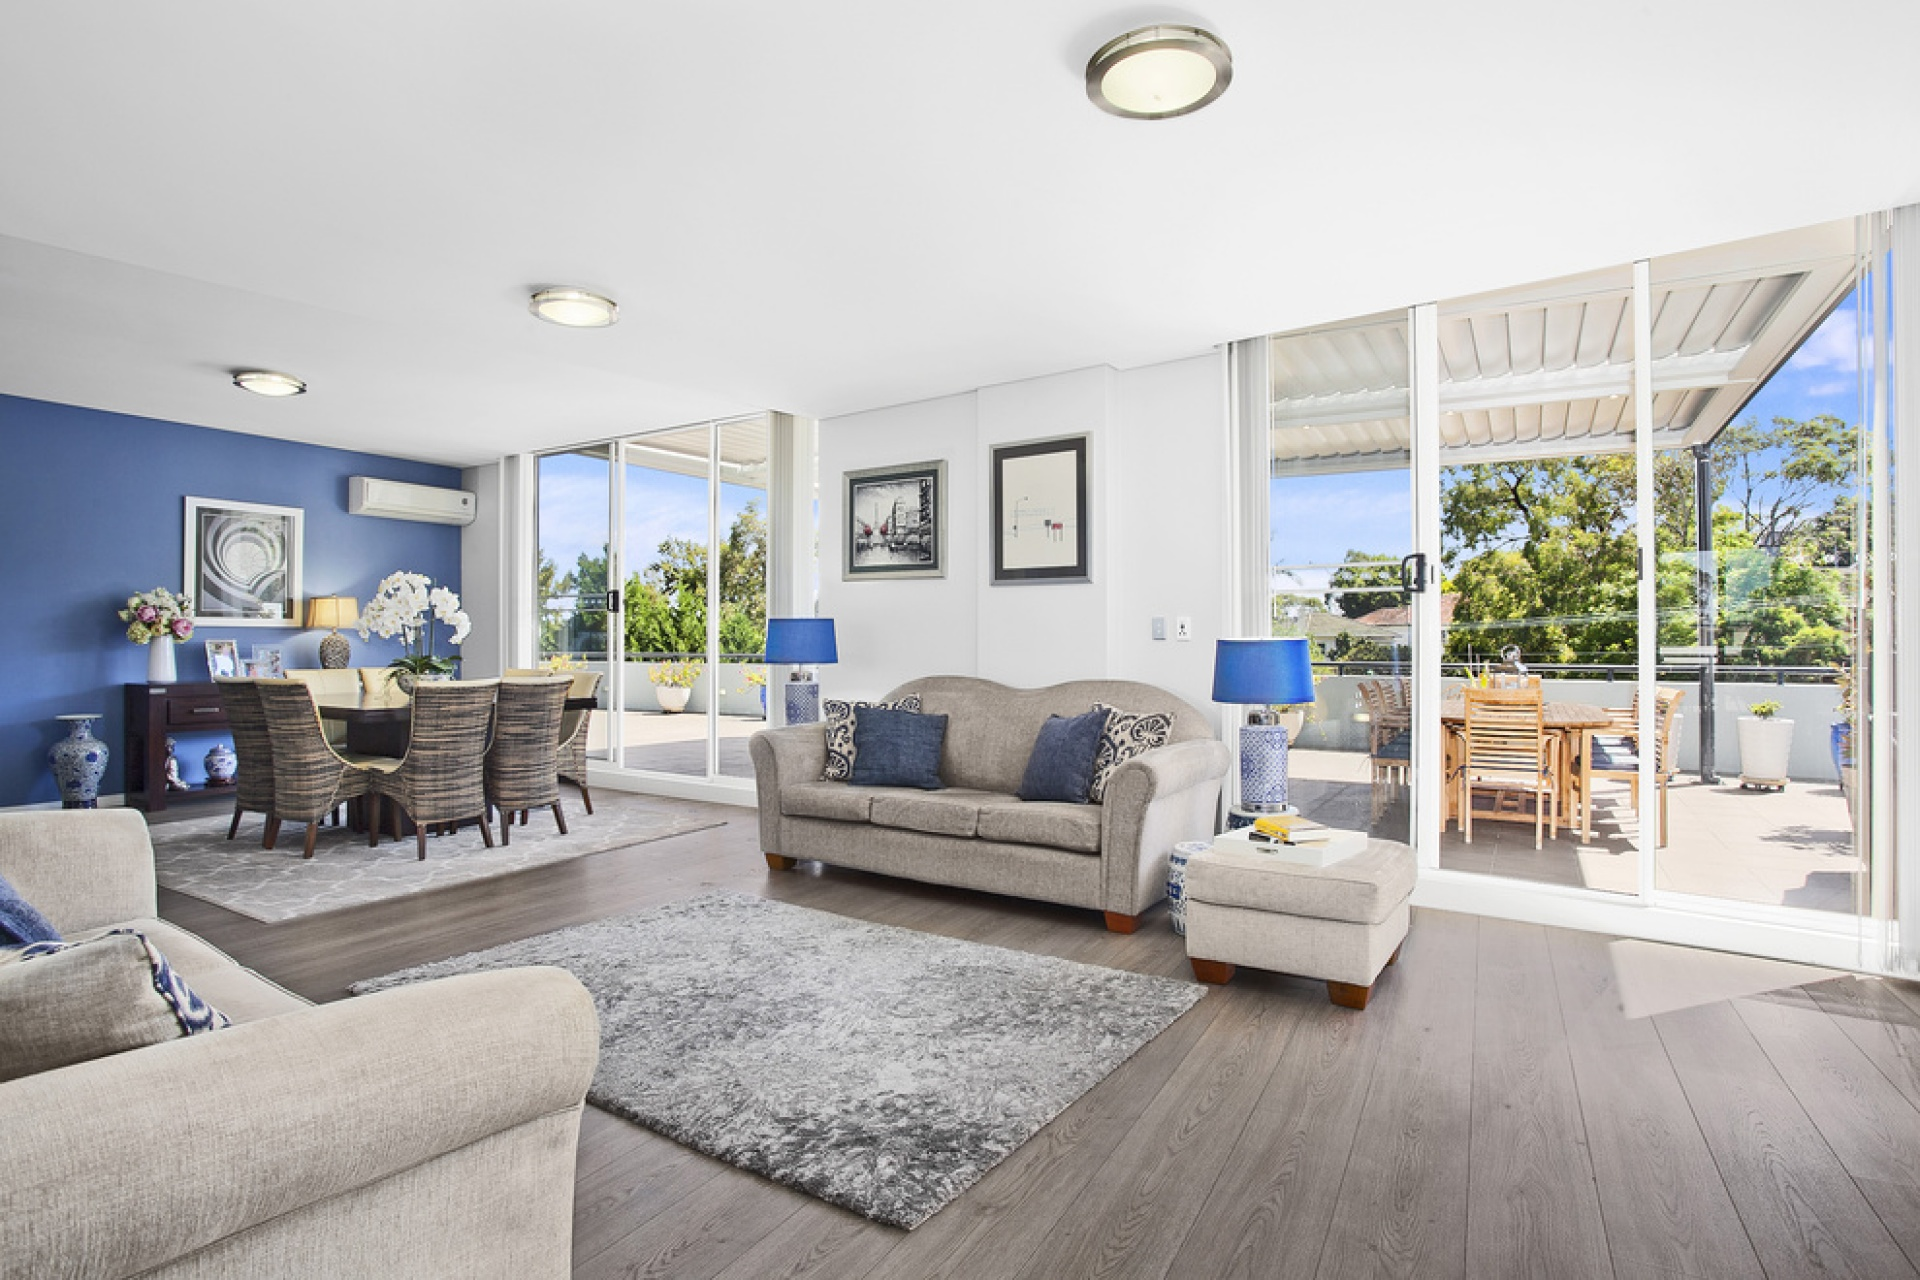 3 Bedrooms, Apartment, Sold , Mercer Street, 2 Bathrooms, Listing ID 1465, Castle Hill , NSW, Australia, 2154,